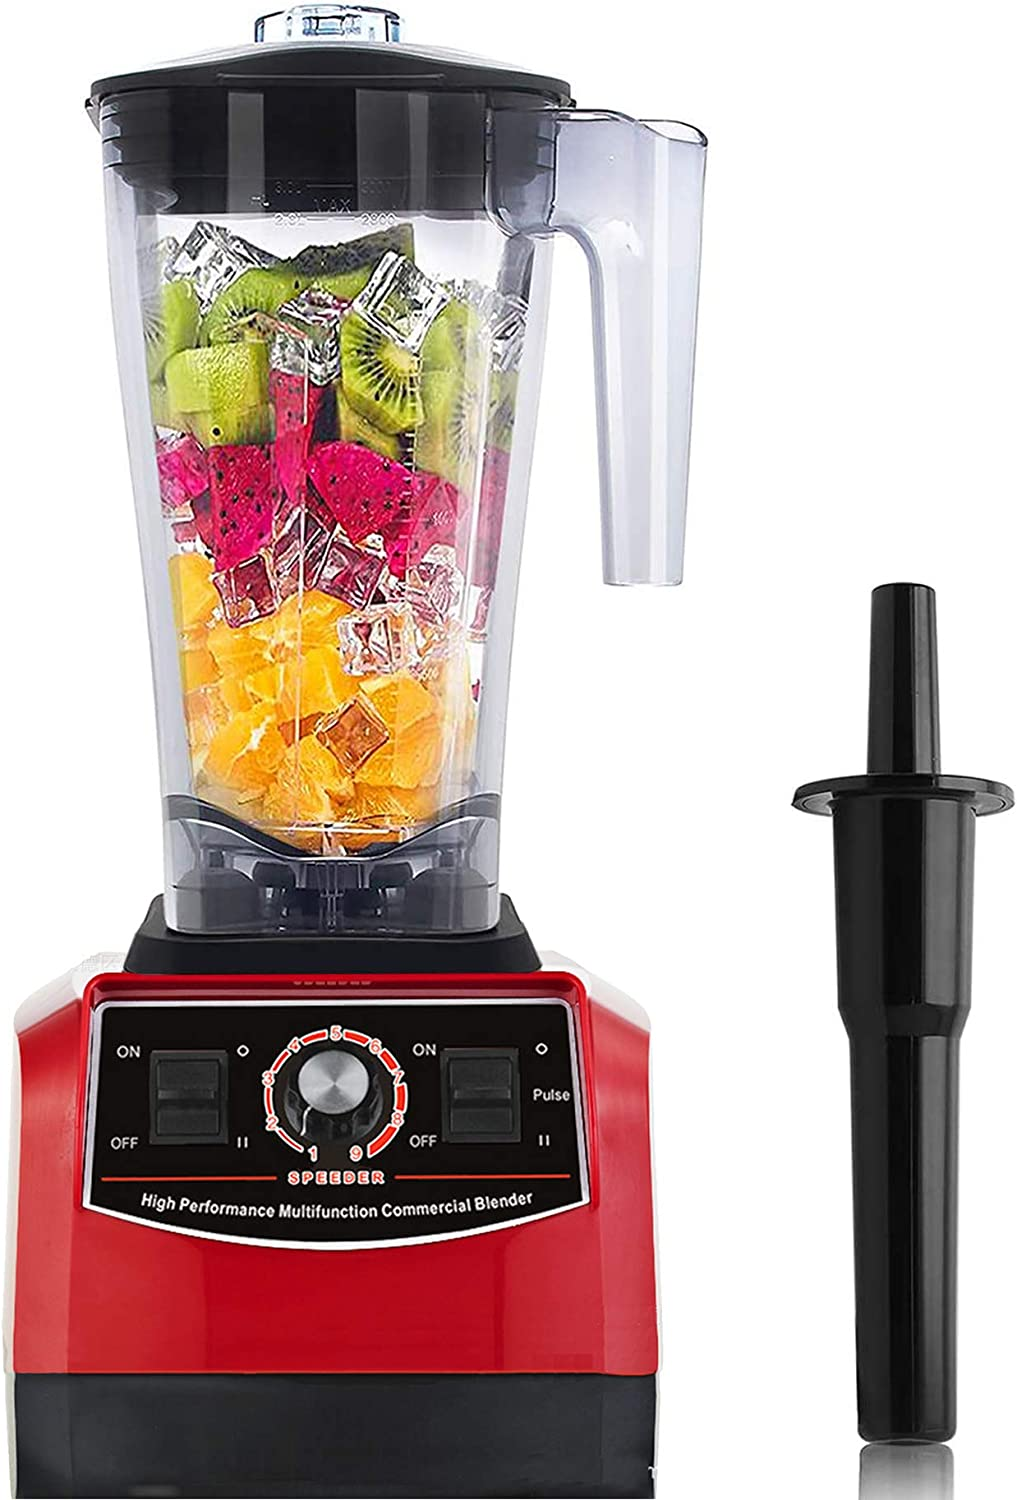 Huanyu Professional Countertop Blender 100 oz Variable Speed & Pulse Feature for Fruit Smoothie Ice Soy Milk Hot Soups Frozen Desserts Crush Mix Home Commercial 2200W G5500 (110V US Plug, Red)